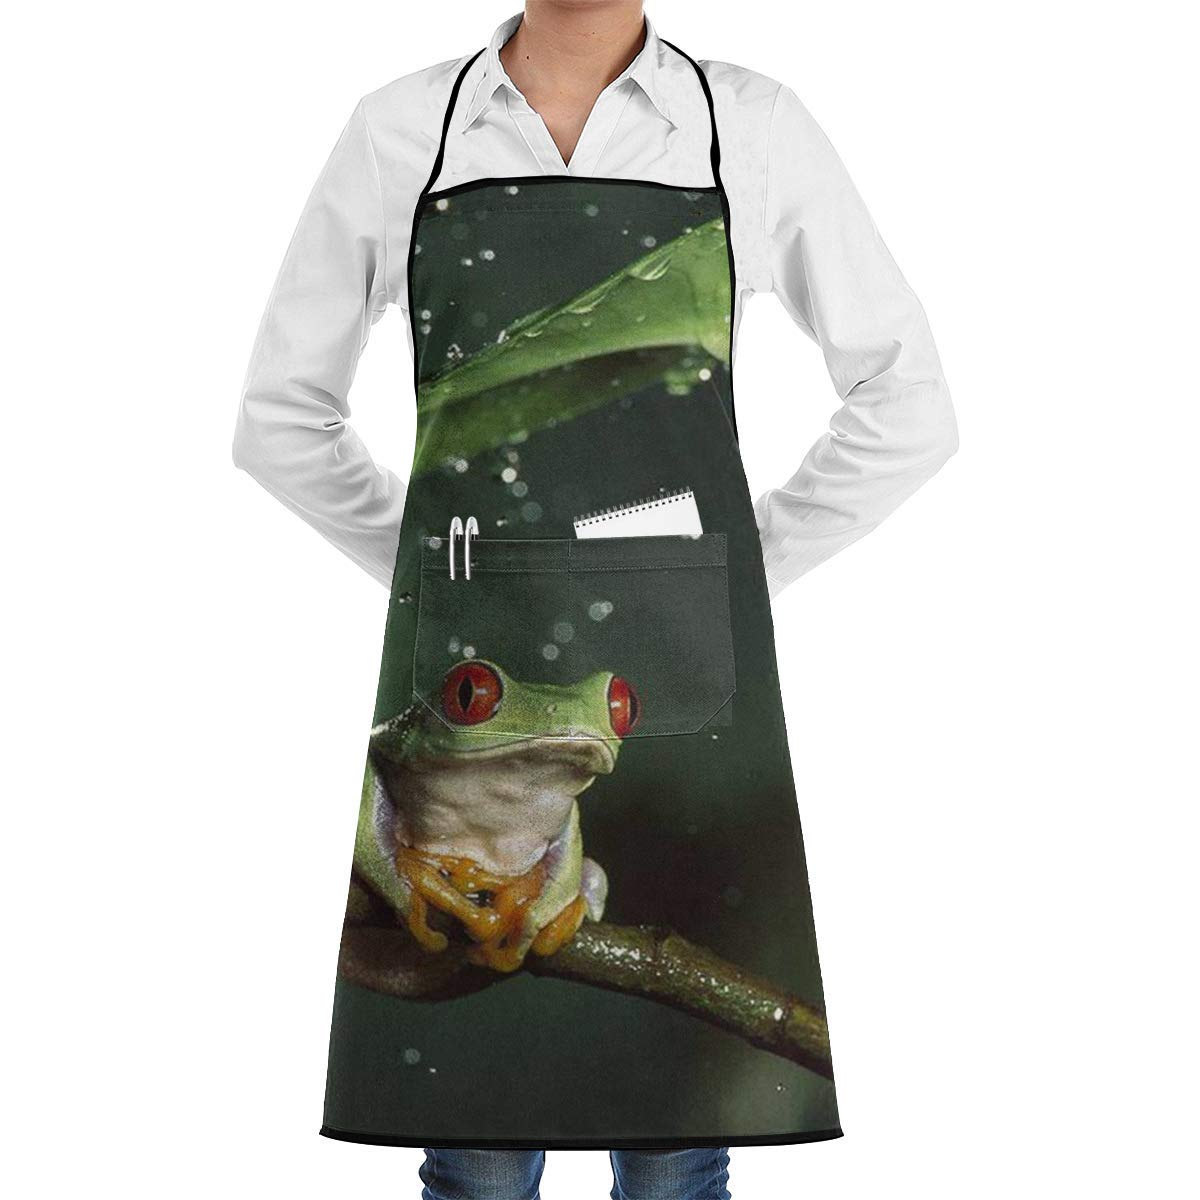 Liliynice Deluxe Cooking Aprons, Nature Rain Hylidae Jungle Animals Frogs Commercial Chef Apron with Pocket Unisex Restaurant Kitchen Bib Apron Machine Washable Perfect for Cooking Baking